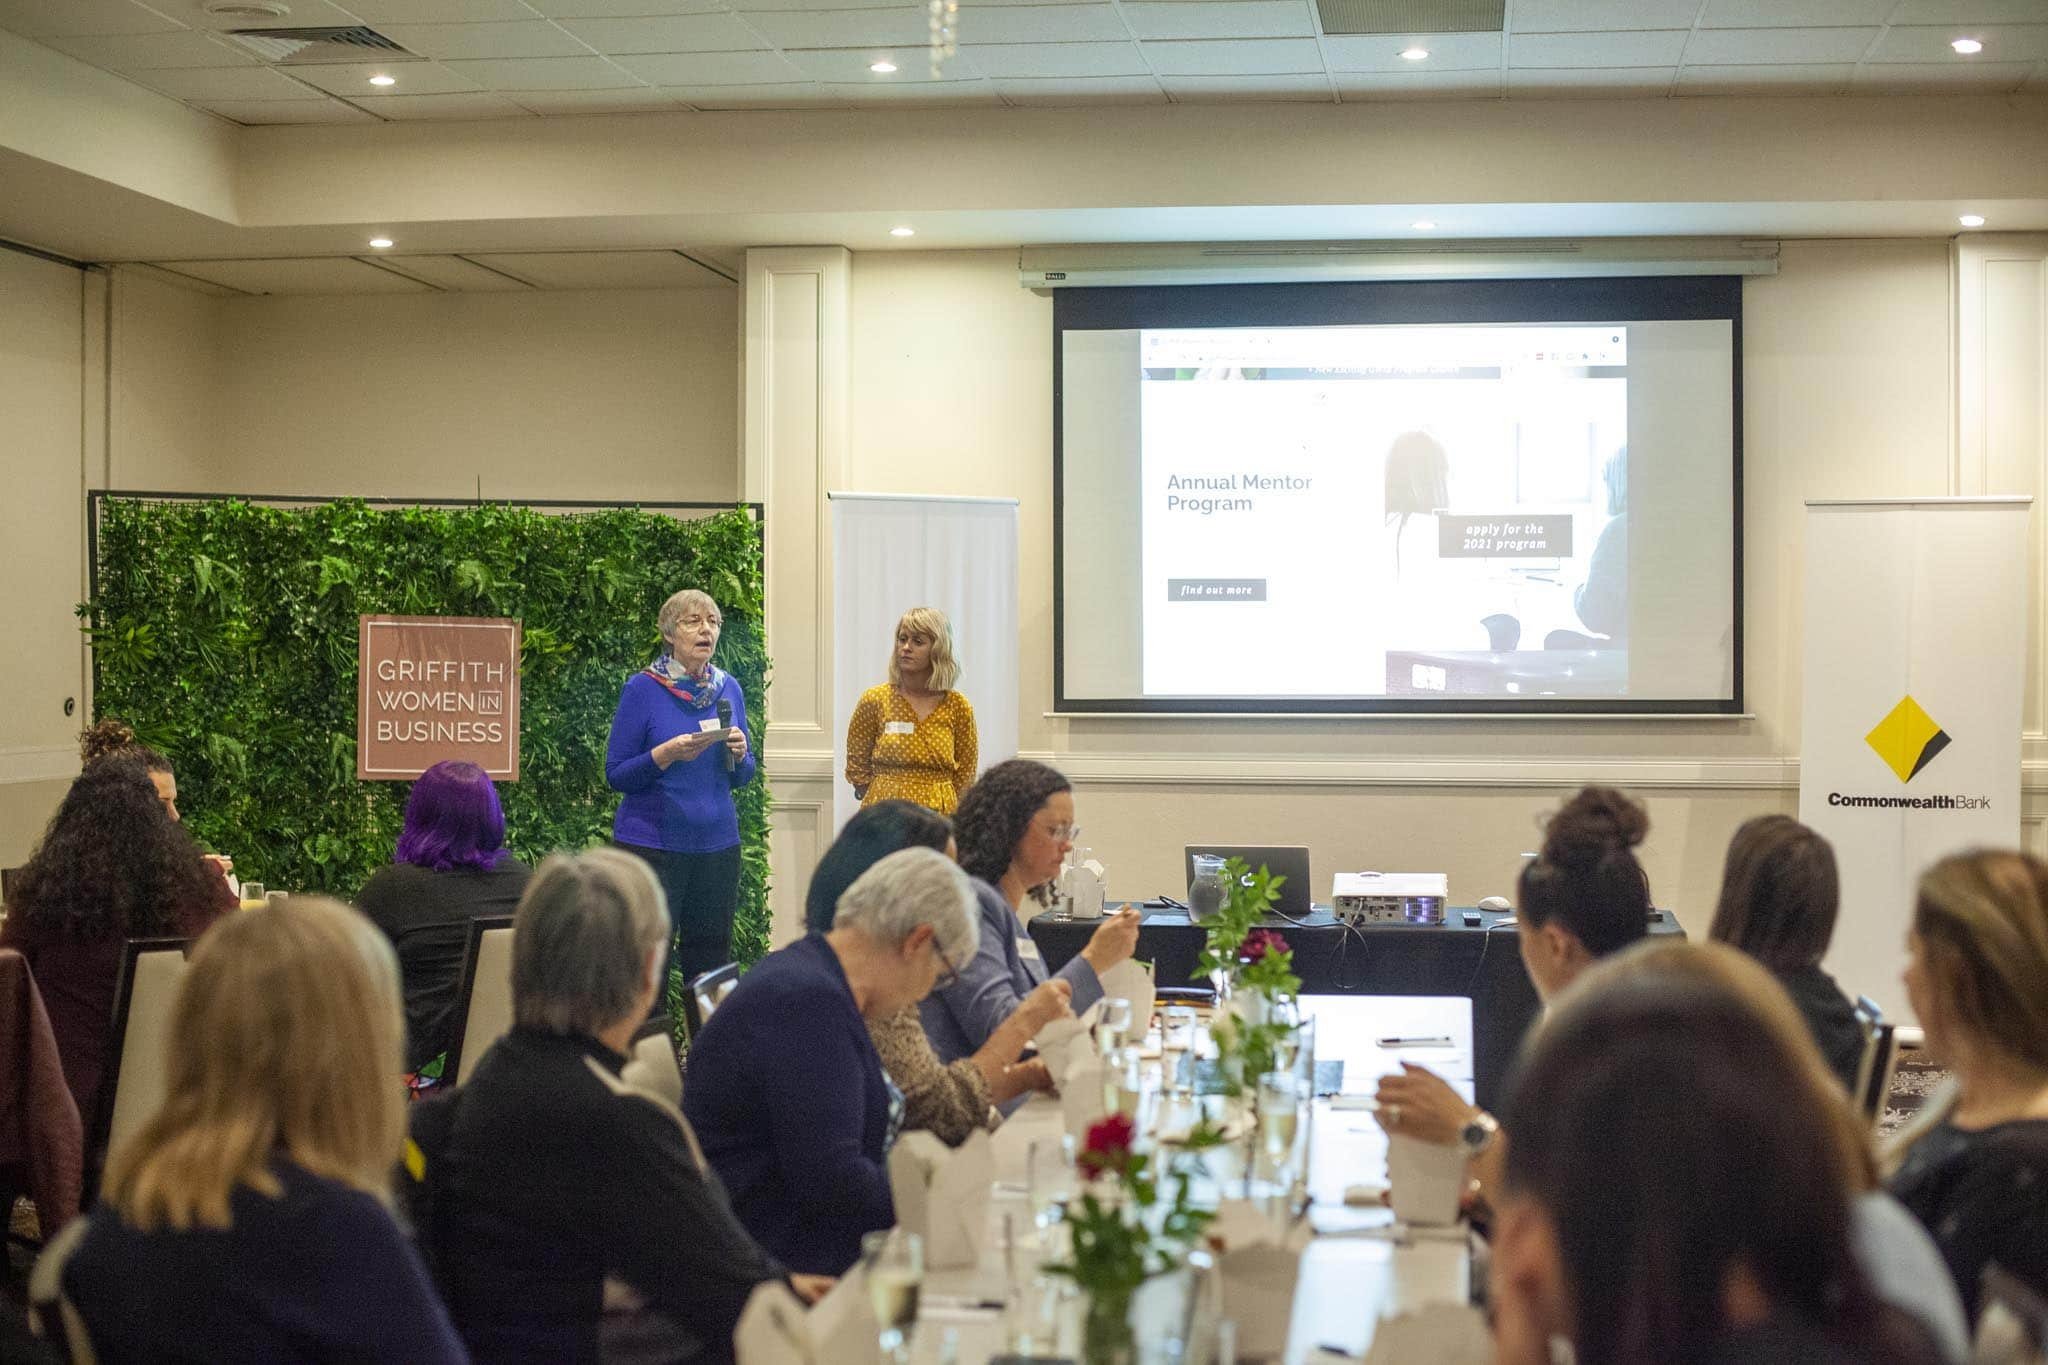 Speed Networking & New Program Launch - https://www.griffithwomeninbusiness.org/wp-content/uploads/2021/06/GWIB-Speed-Networking-2021-IMG_0906-2048px.jpg